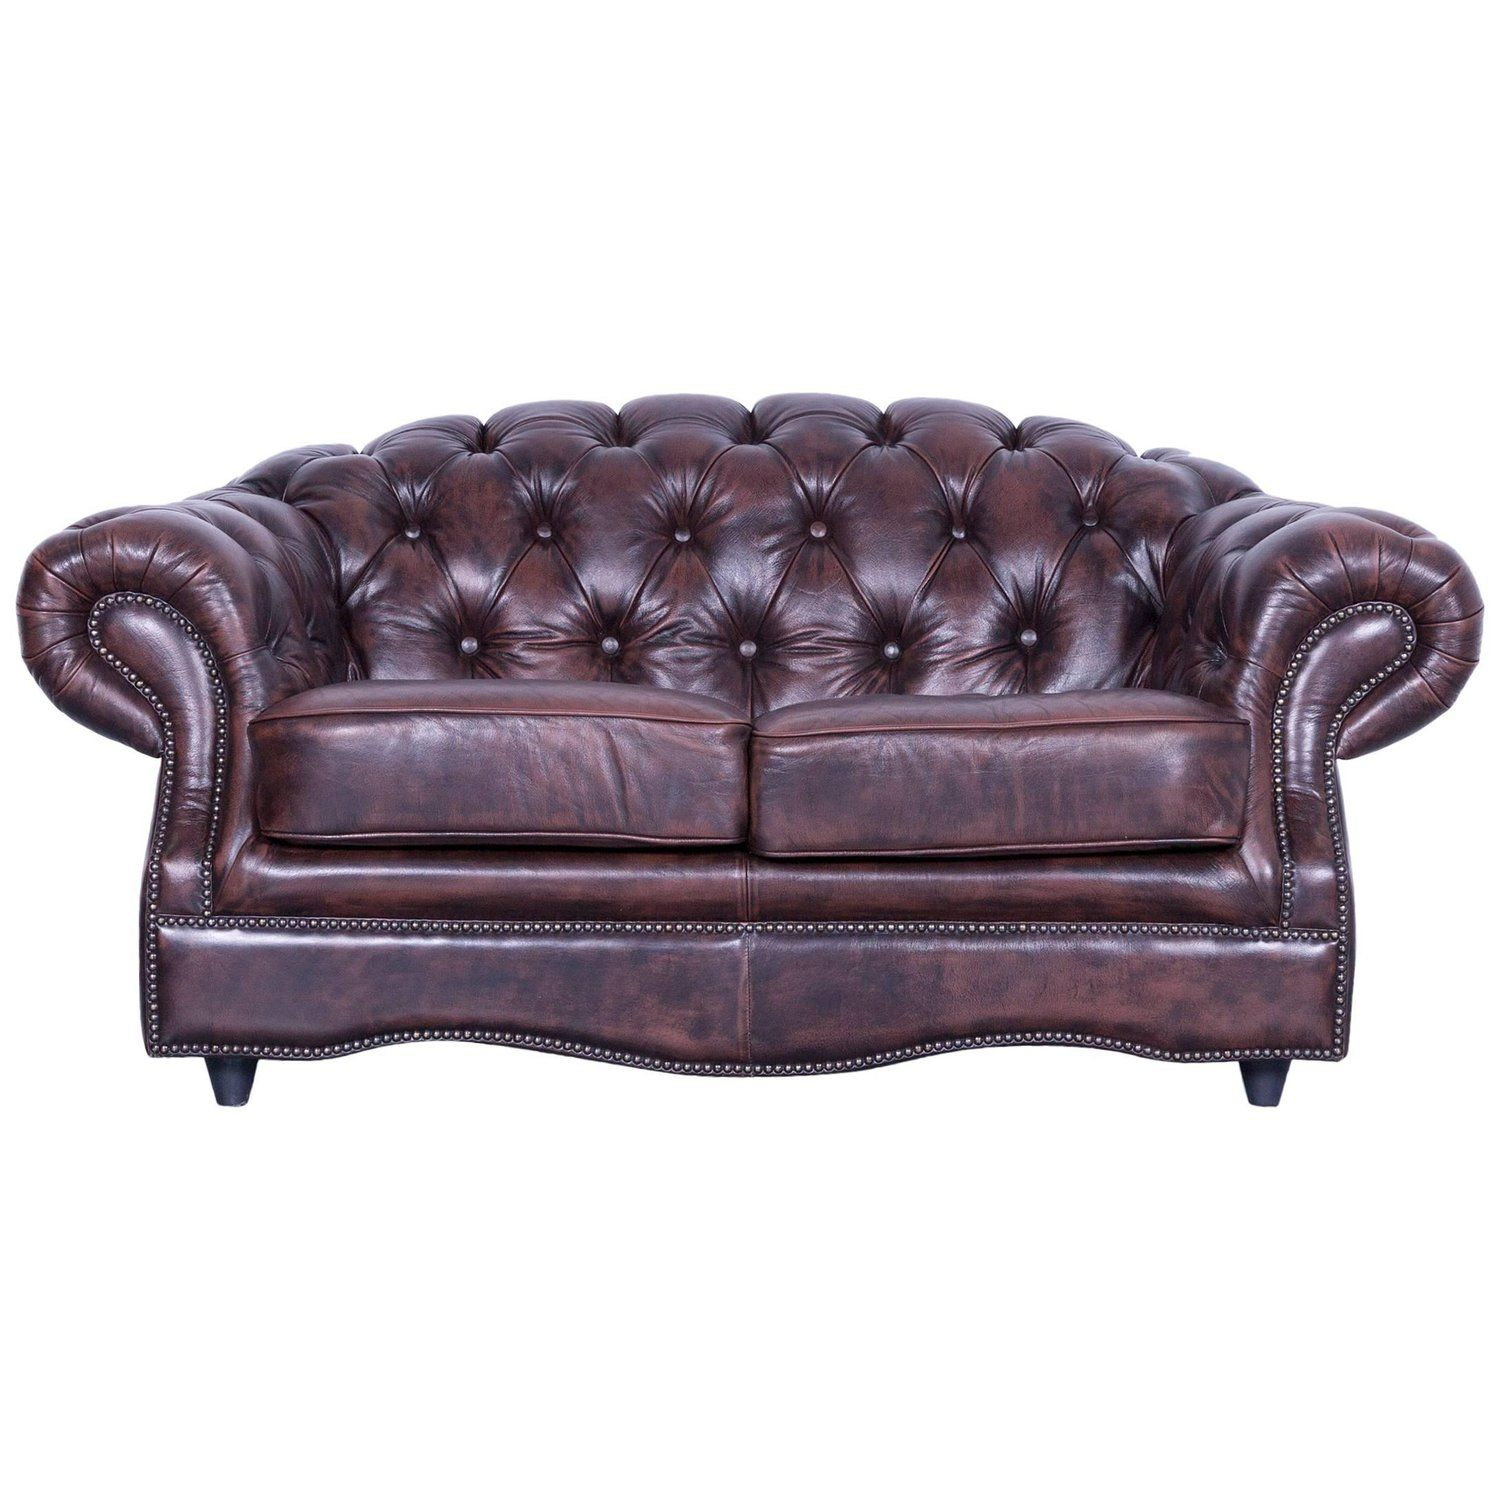 Chesterfield Centurion Leather Sofa Brown Two Seat Couch